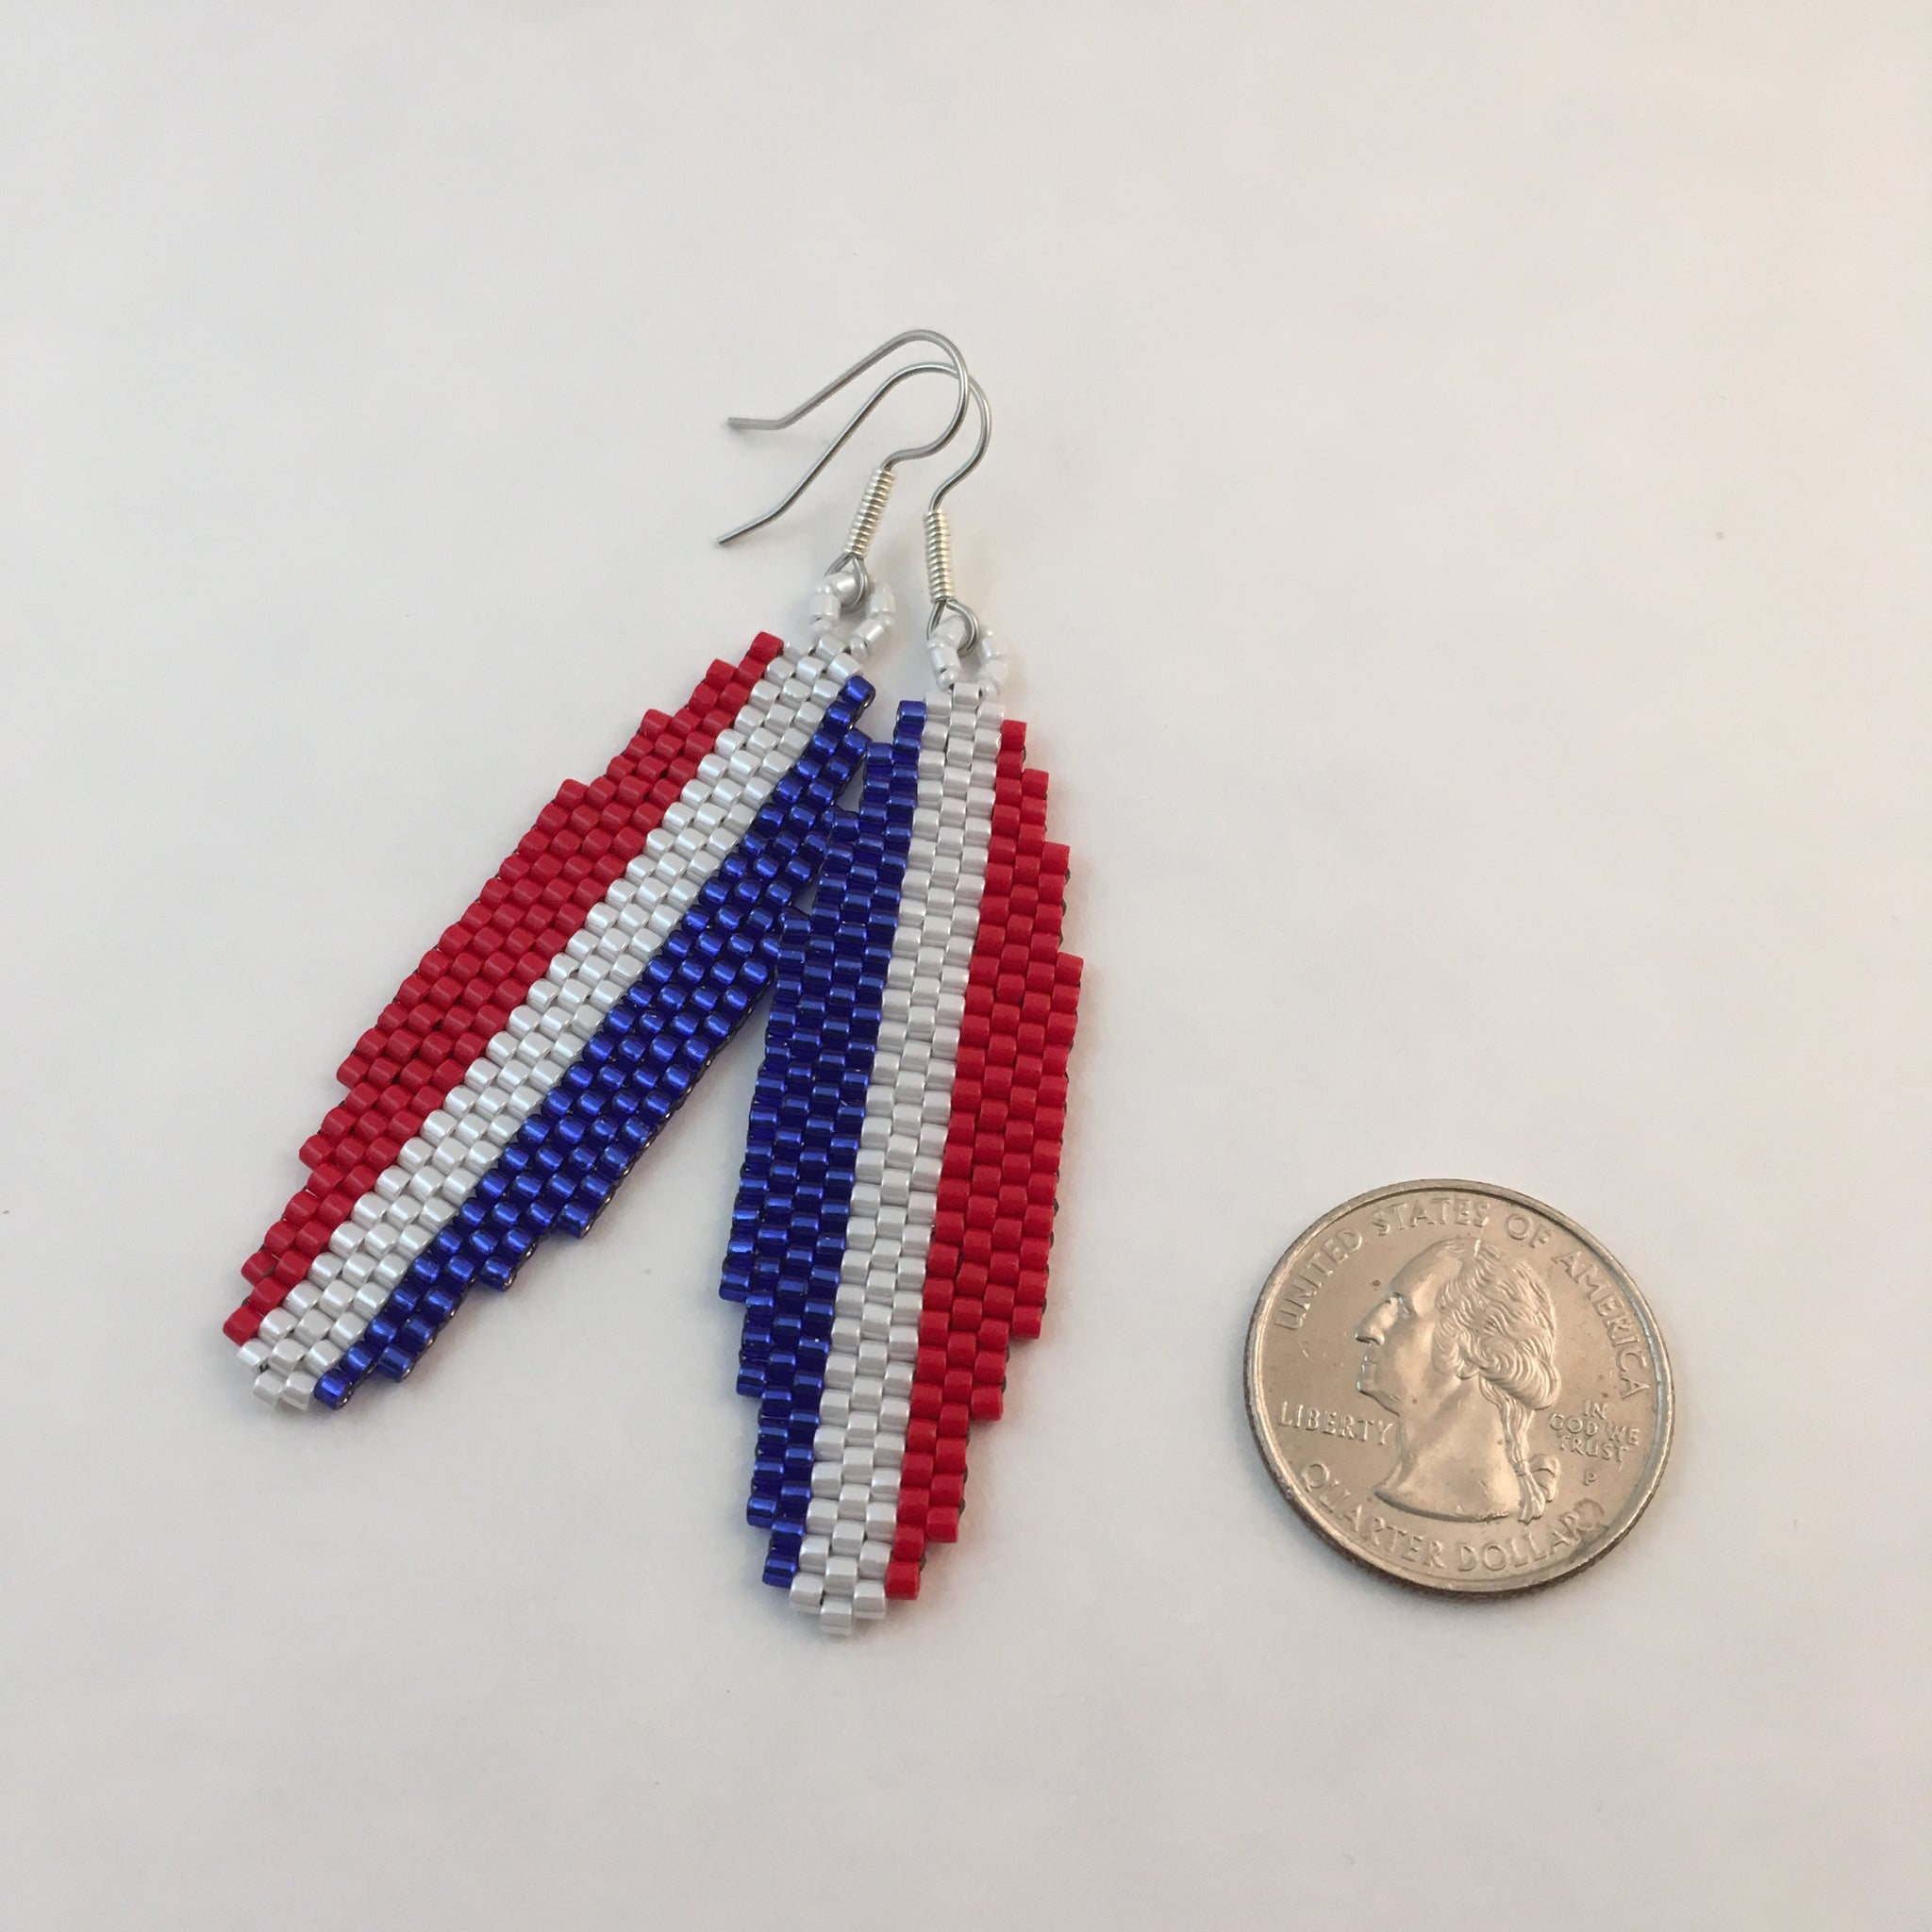 Surfboard Earrings in Red, Blue and White